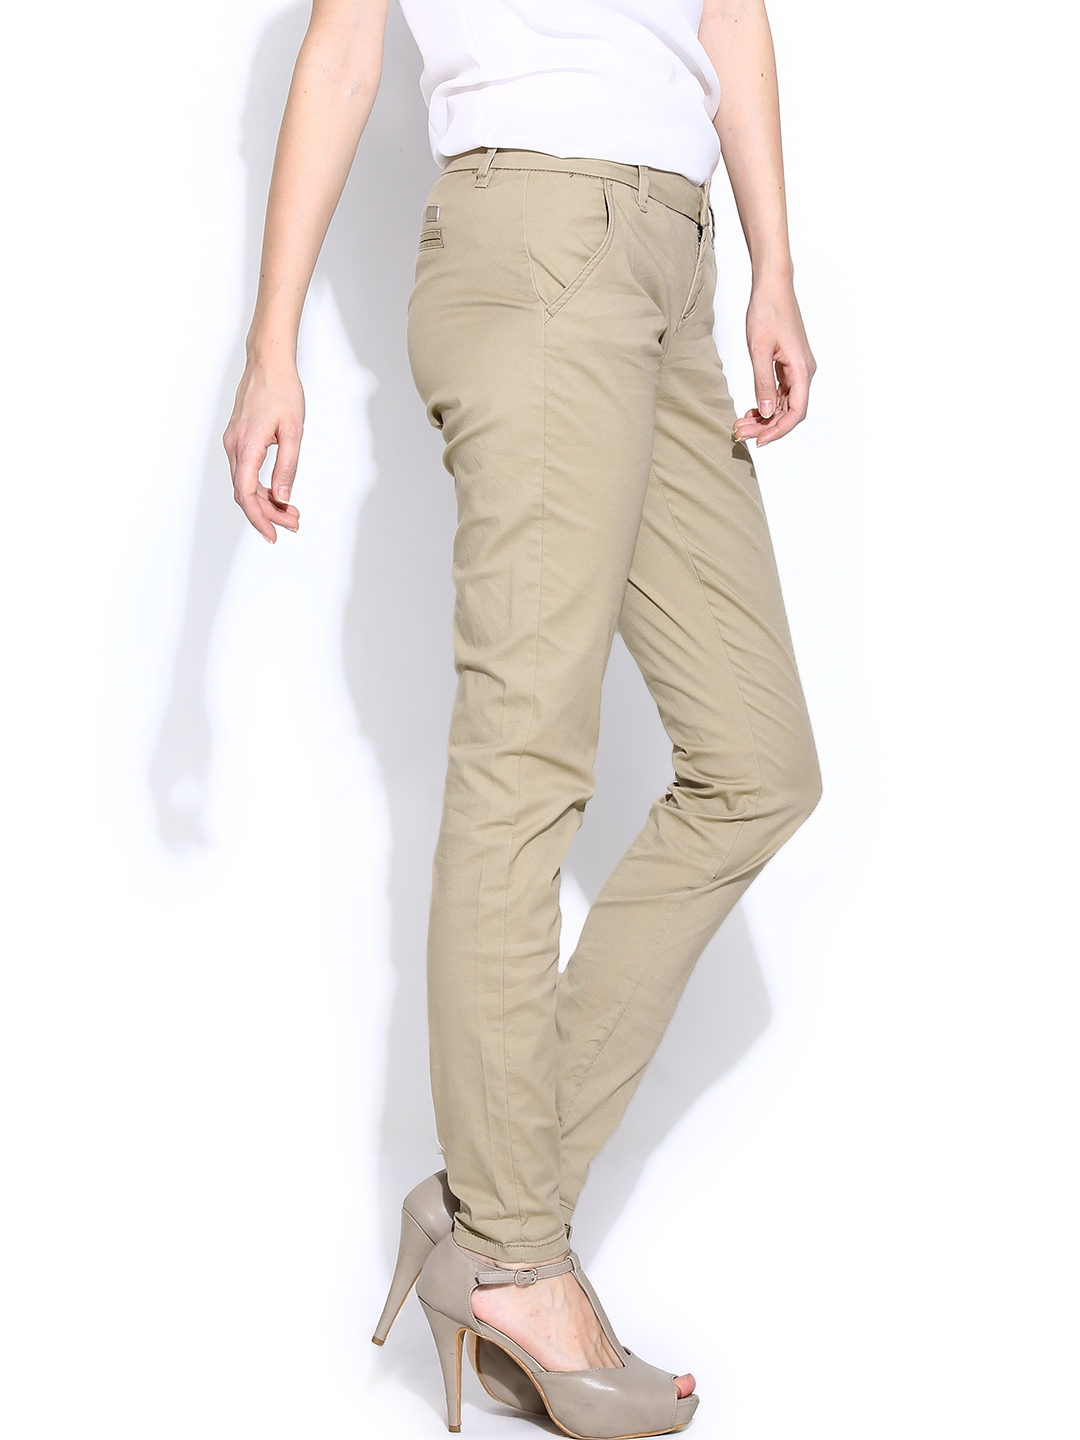 Beige Palazzo Pants ($ - $): 30 of items - Shop Beige Palazzo Pants from ALL your favorite stores & find HUGE SAVINGS up to 80% off Beige Palazzo Pants, including GREAT DEALS like Plus Size White Mark Print Palazzo Pants Beige.